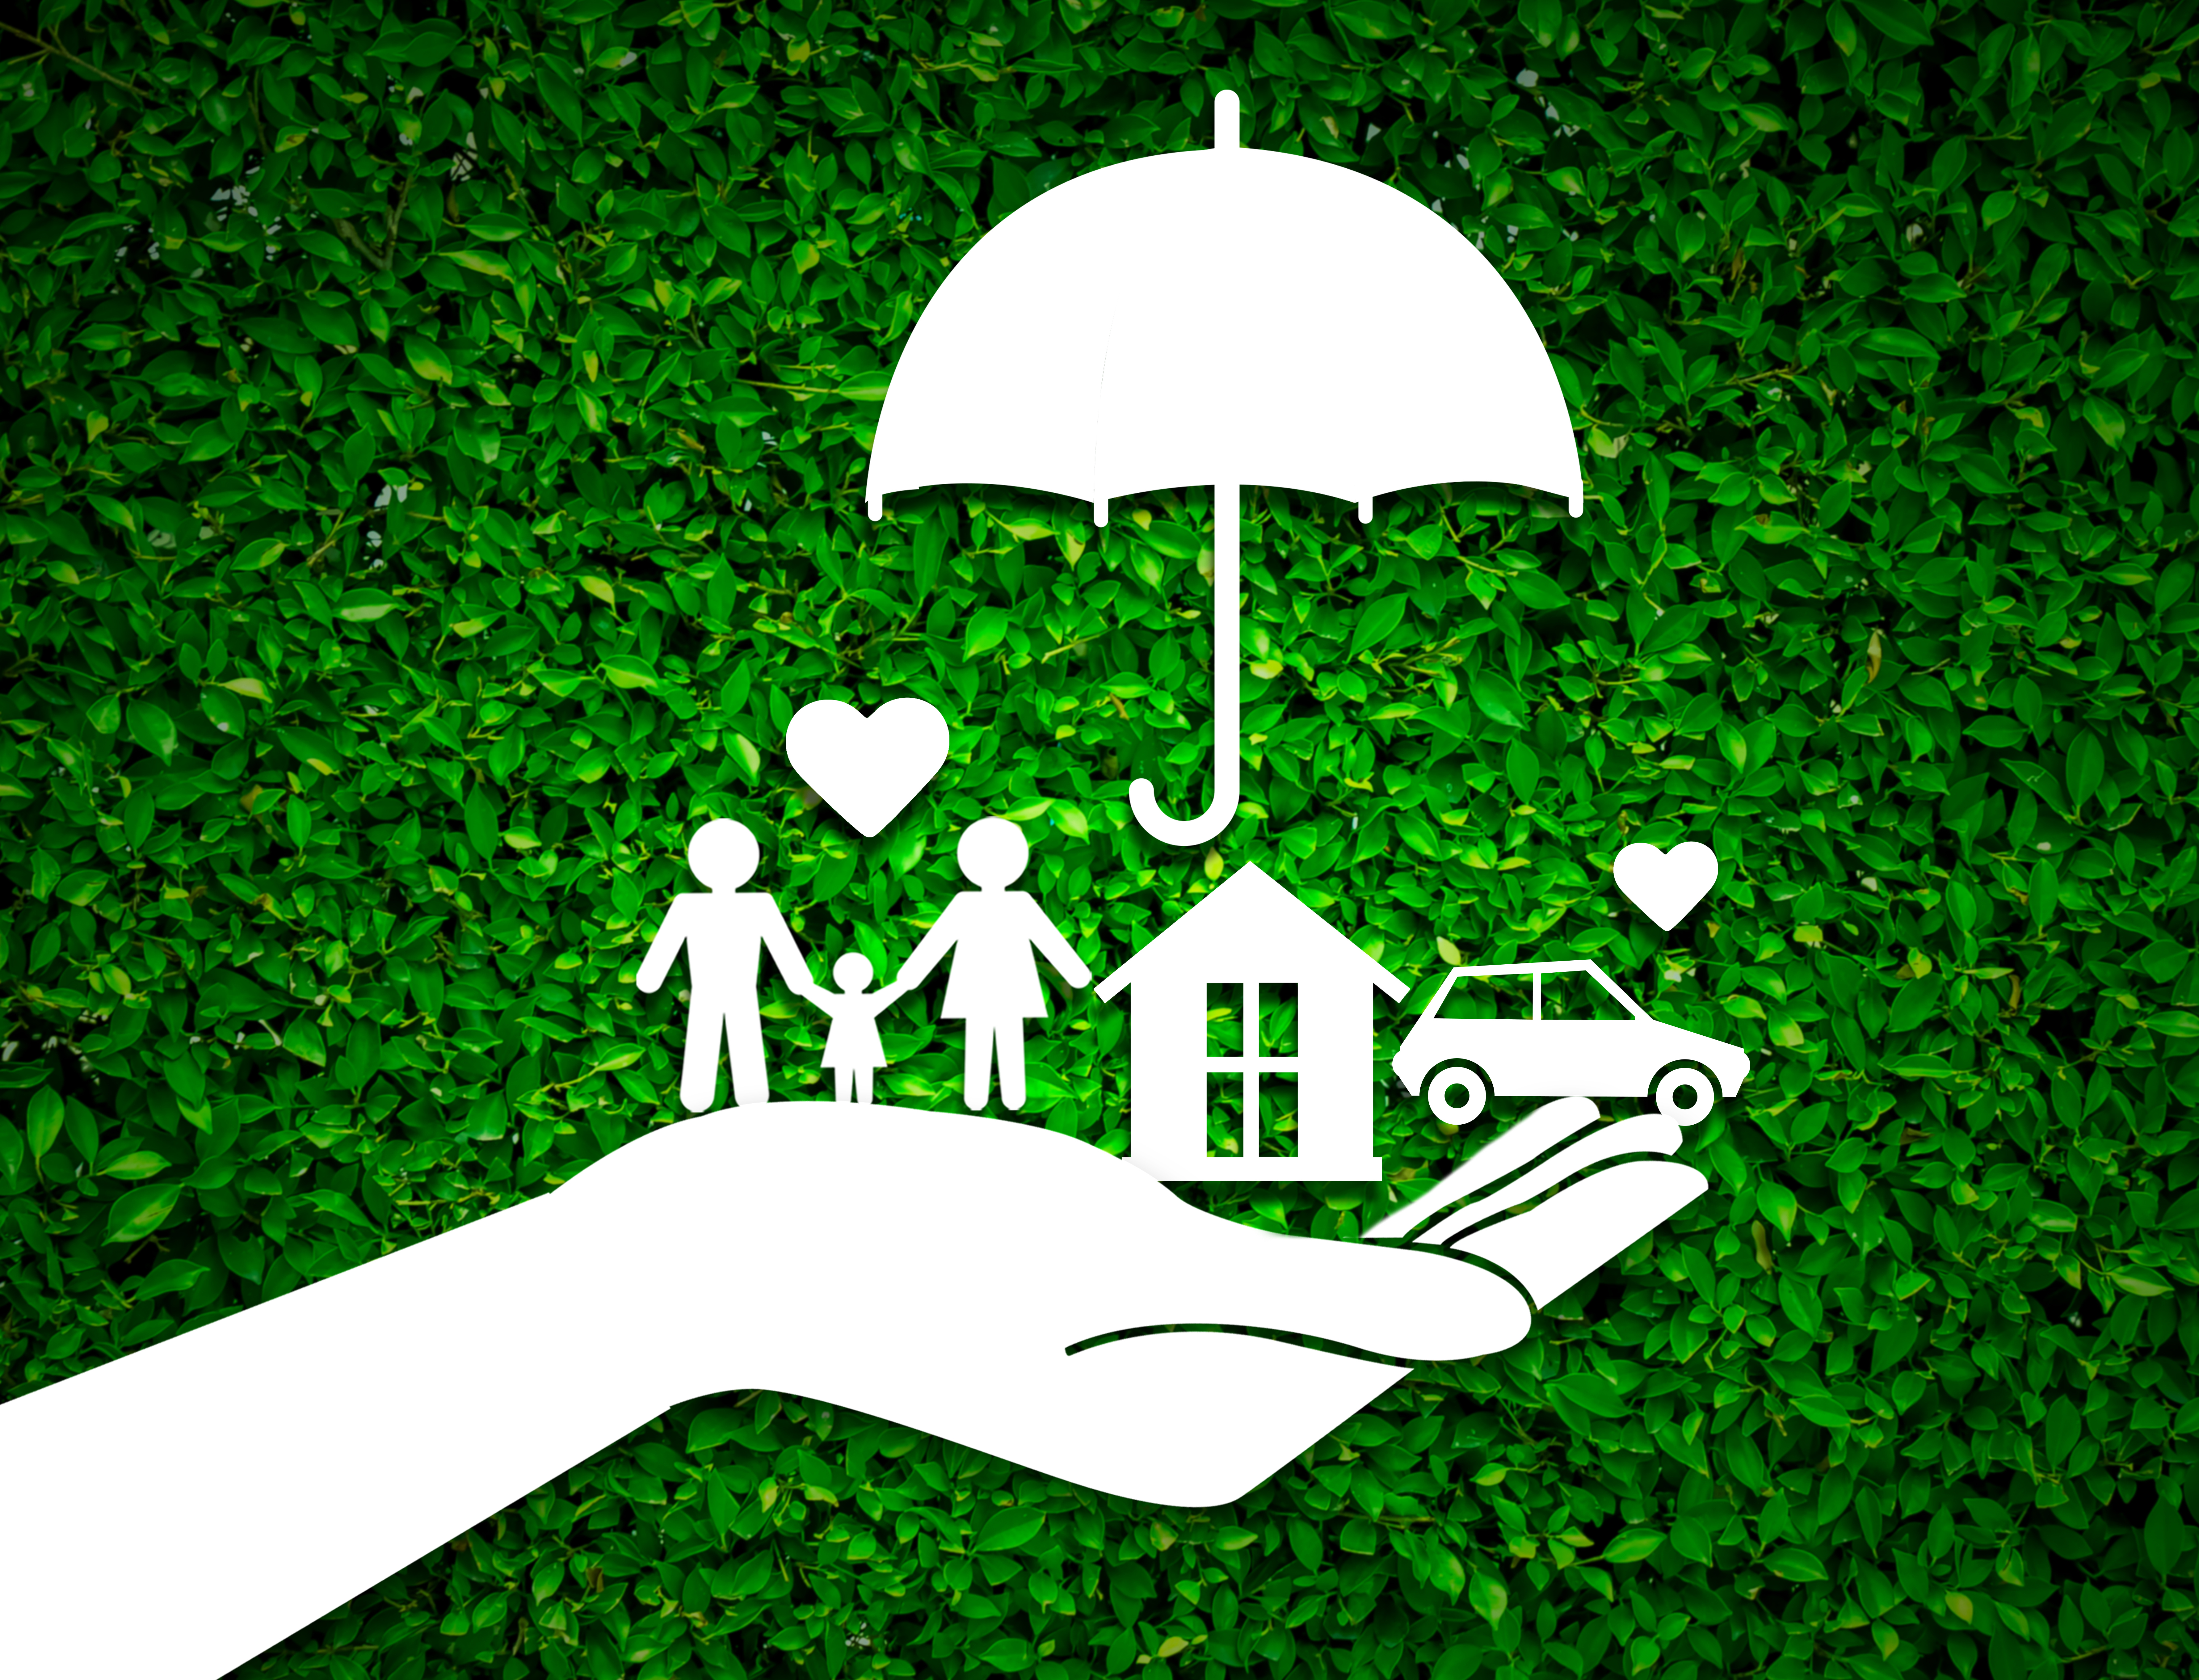 Insurance concept image protect house car family